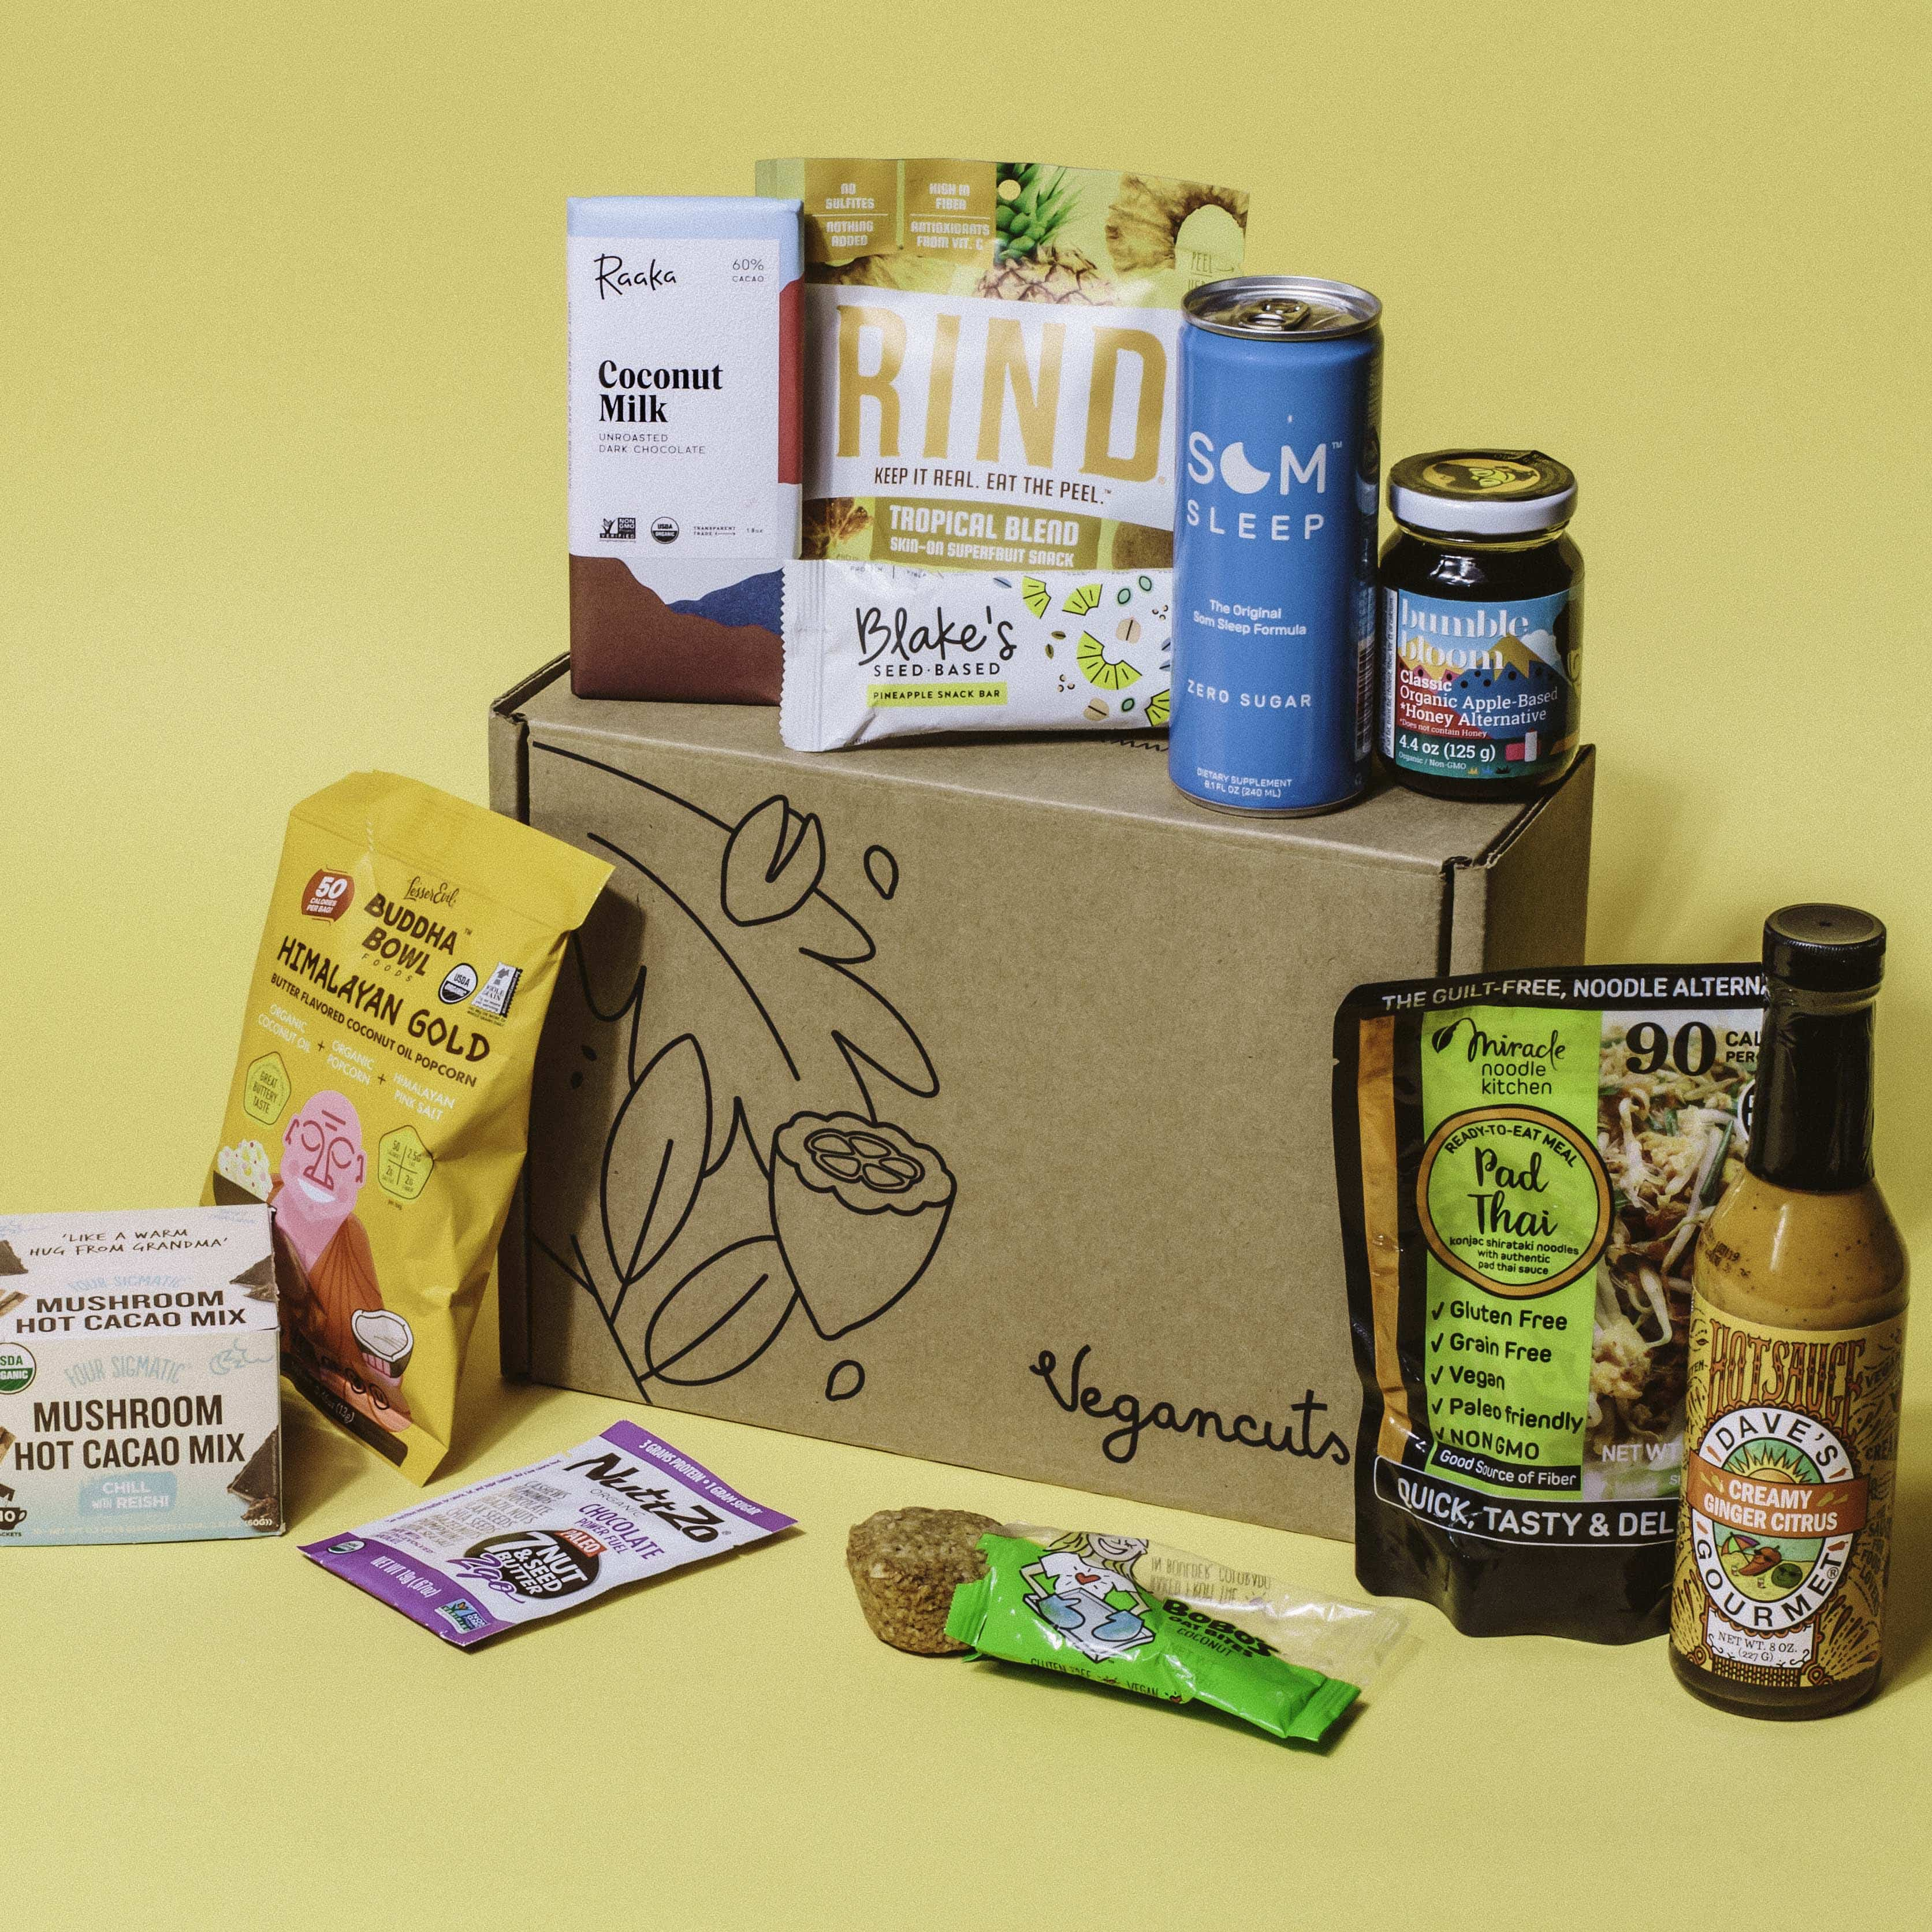 Vegancuts September 2019 Snack Box Spoilers!